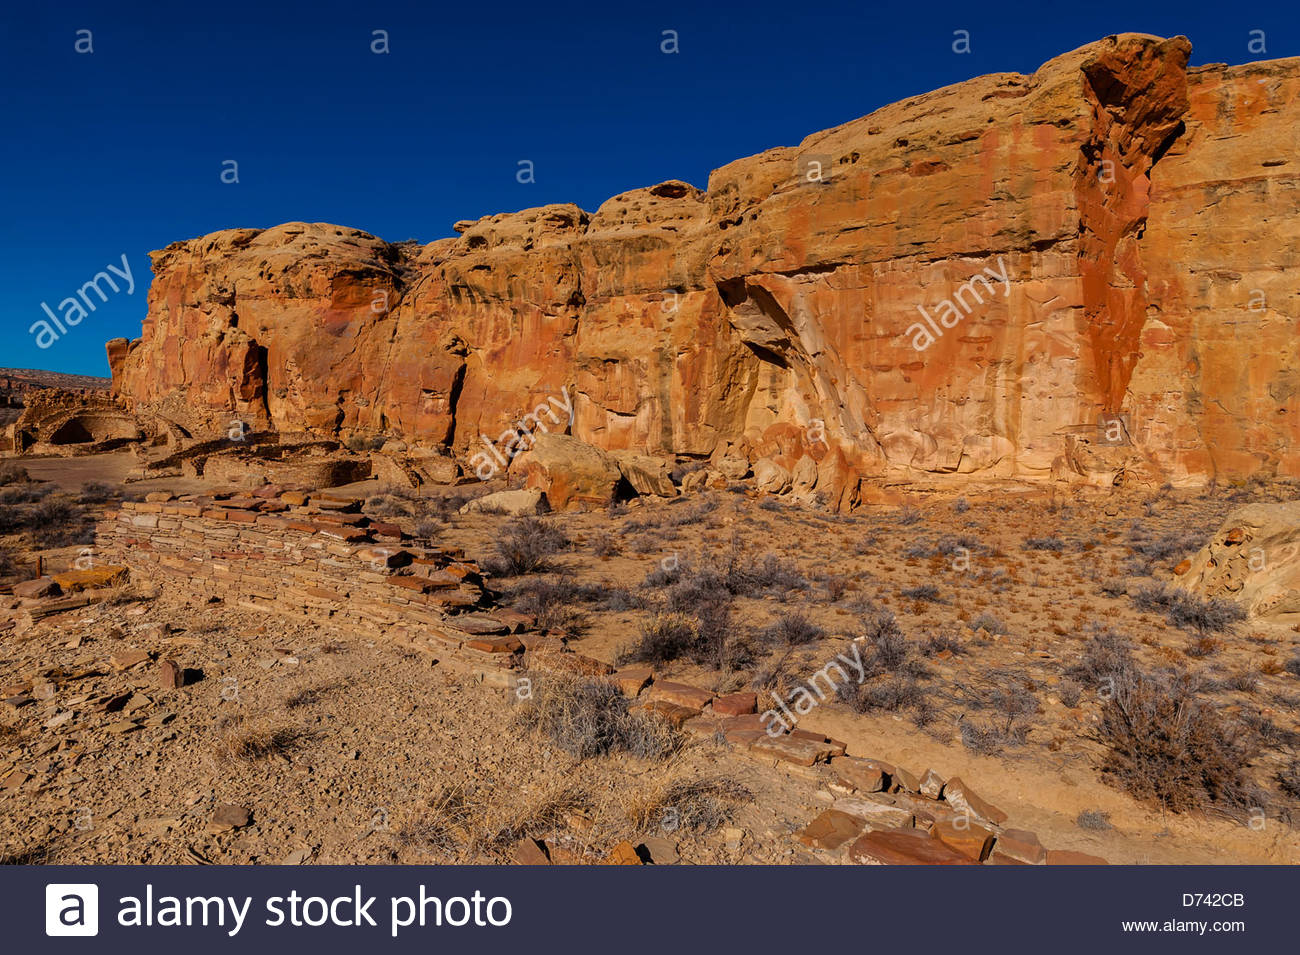 Chetro Ketl (begun around 1020 and had an estimated 500 rooms and 16 kivas), Chaco Culture National Historical Park - Stock Image